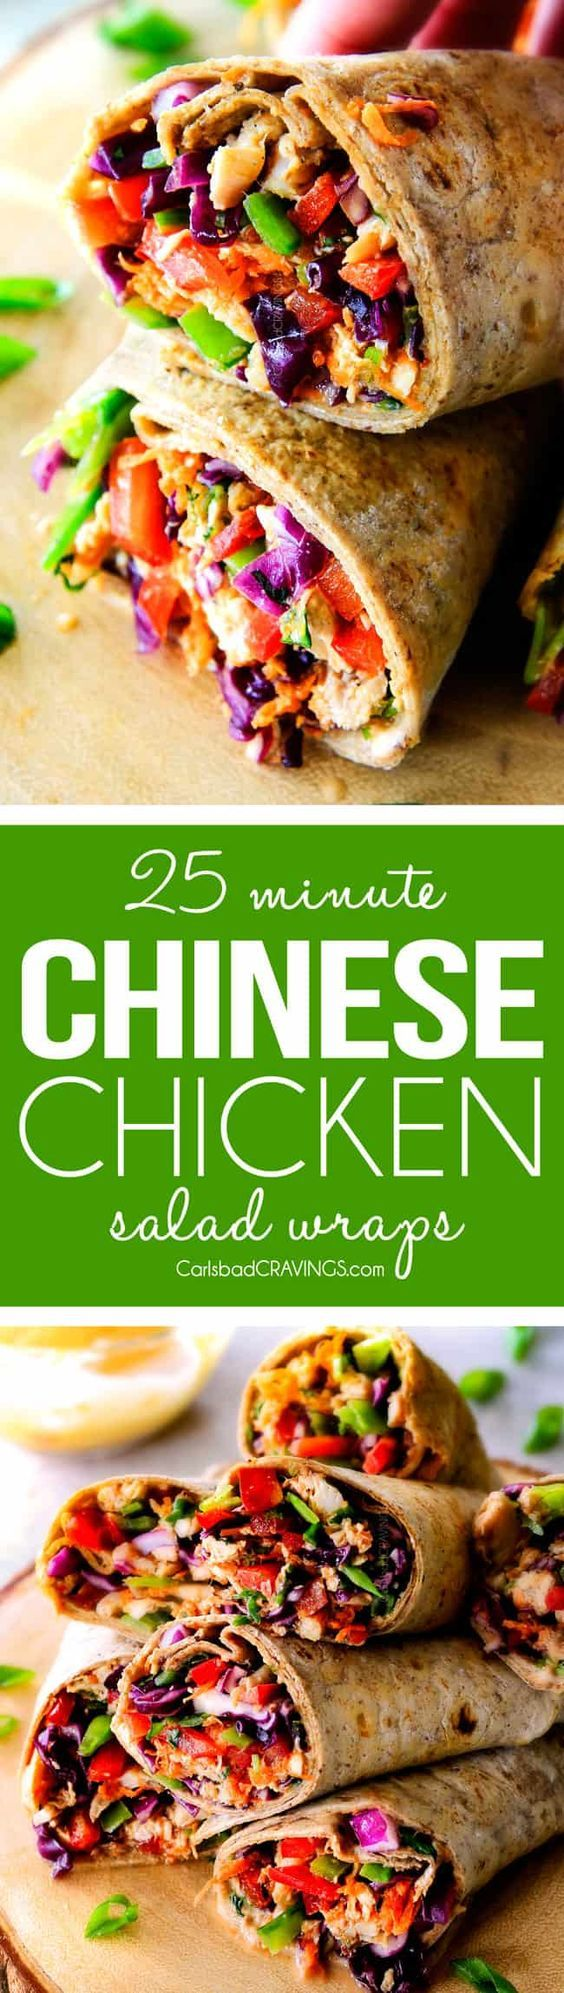 25 MINUTE fresh and crunchy Chinese Chicken Salad Wraps are your favorite Chinese salad in easy, satisfying, healthy portable wrap form!  The vibrant dressing is amazing and the addition of Sweet Chili Sauce takes these to a whole new level!   I love having this filling on hand!  via @carlsbadcraving